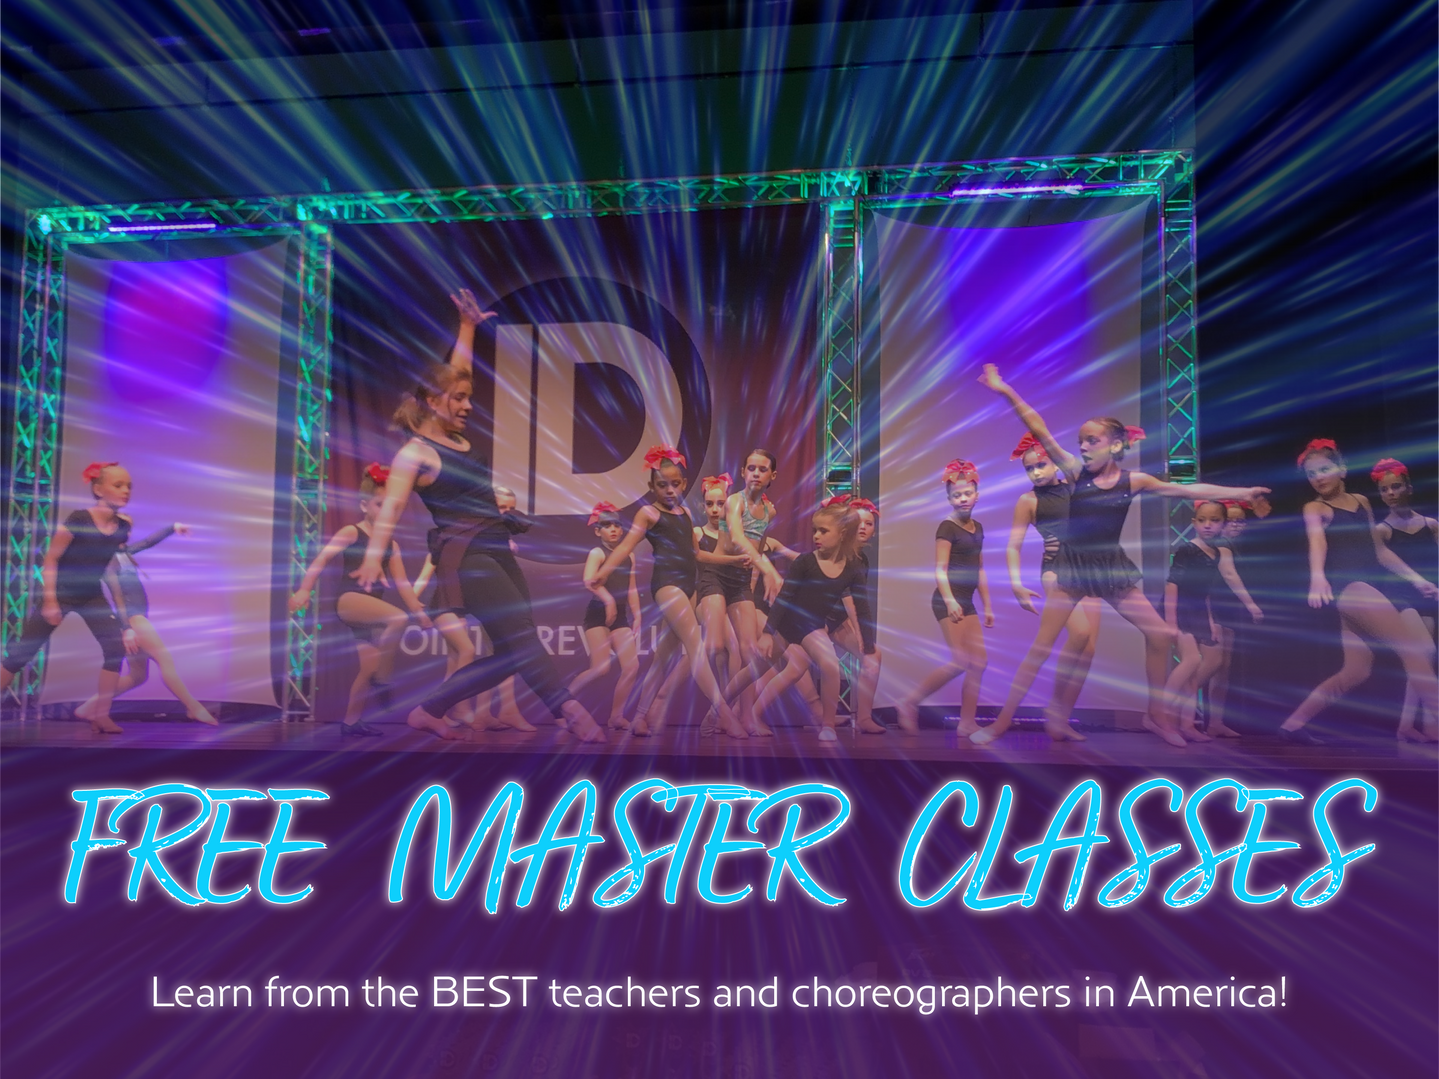 Free Master Classes